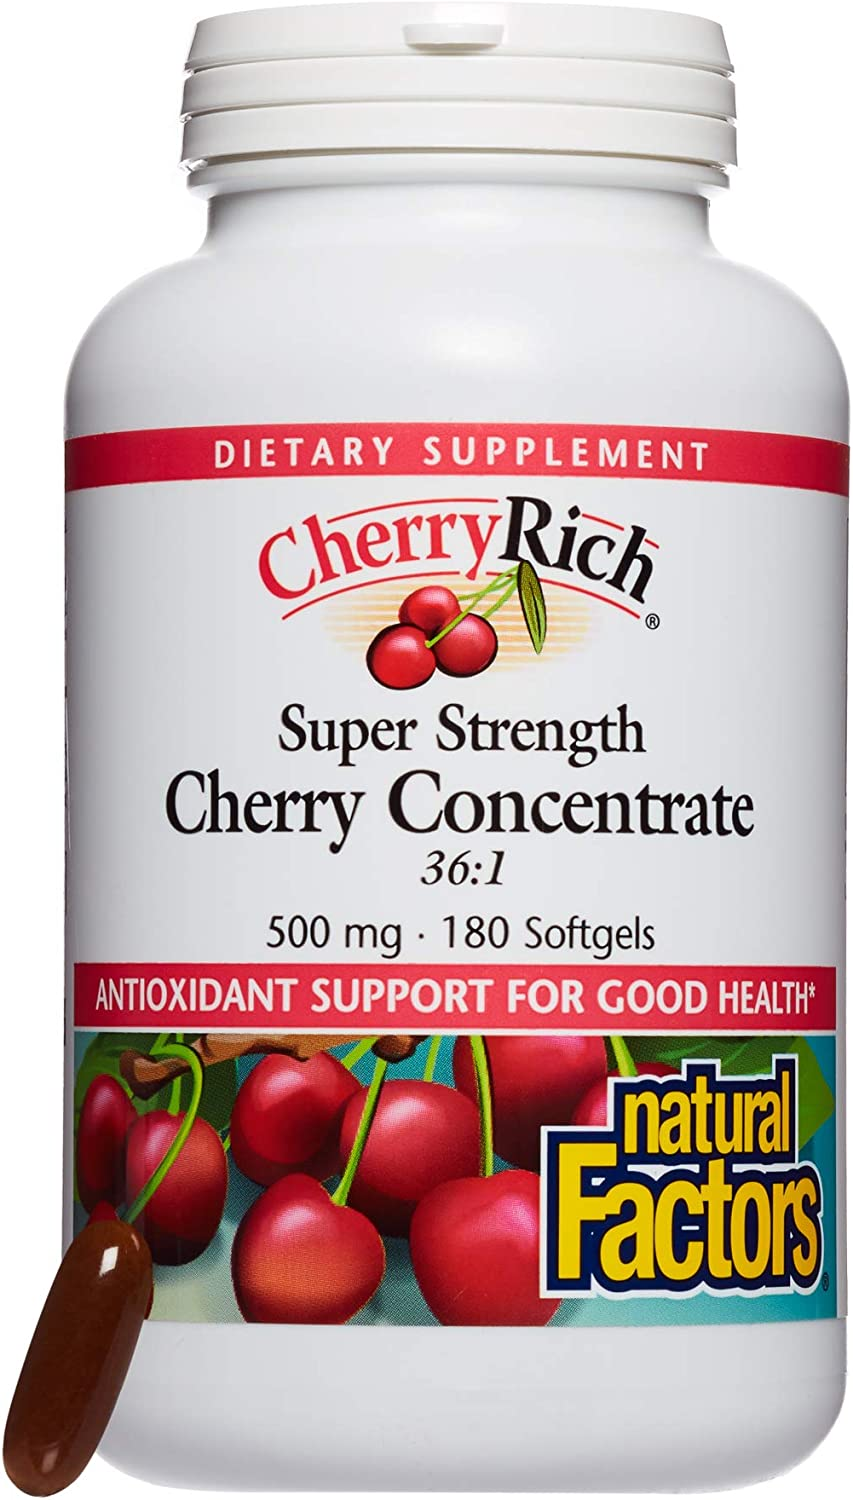 CherryRich by Natural Factors, Super Strength Cherry Concentrate, Antioxidant Support for Healthy Joints and Uric Acid Metabolism, 180 softgels 180 Servings